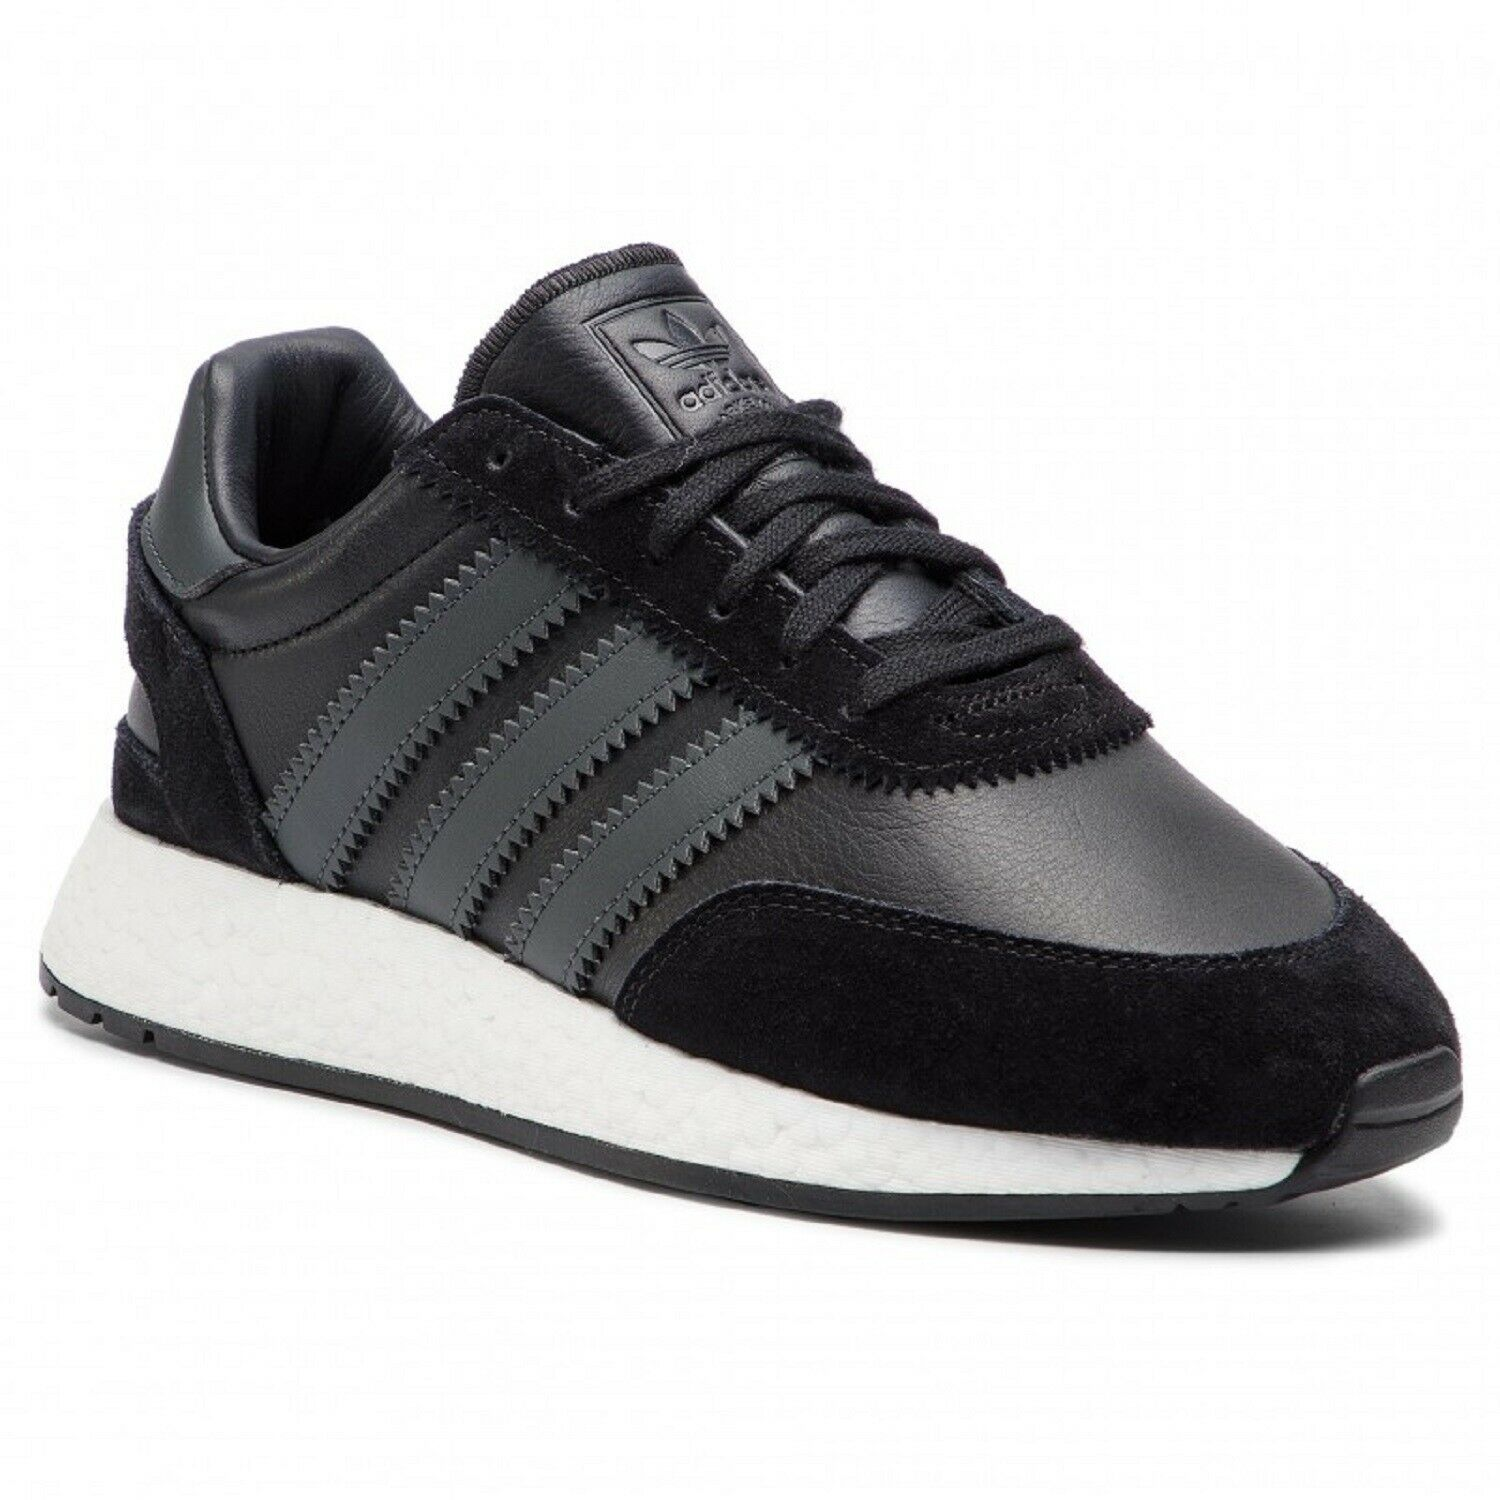 NEW MEN'S ADIDAS ORIGINALS INIKI I-5923 RUNNING SHOES SIZE US 9   BD7798 BLK